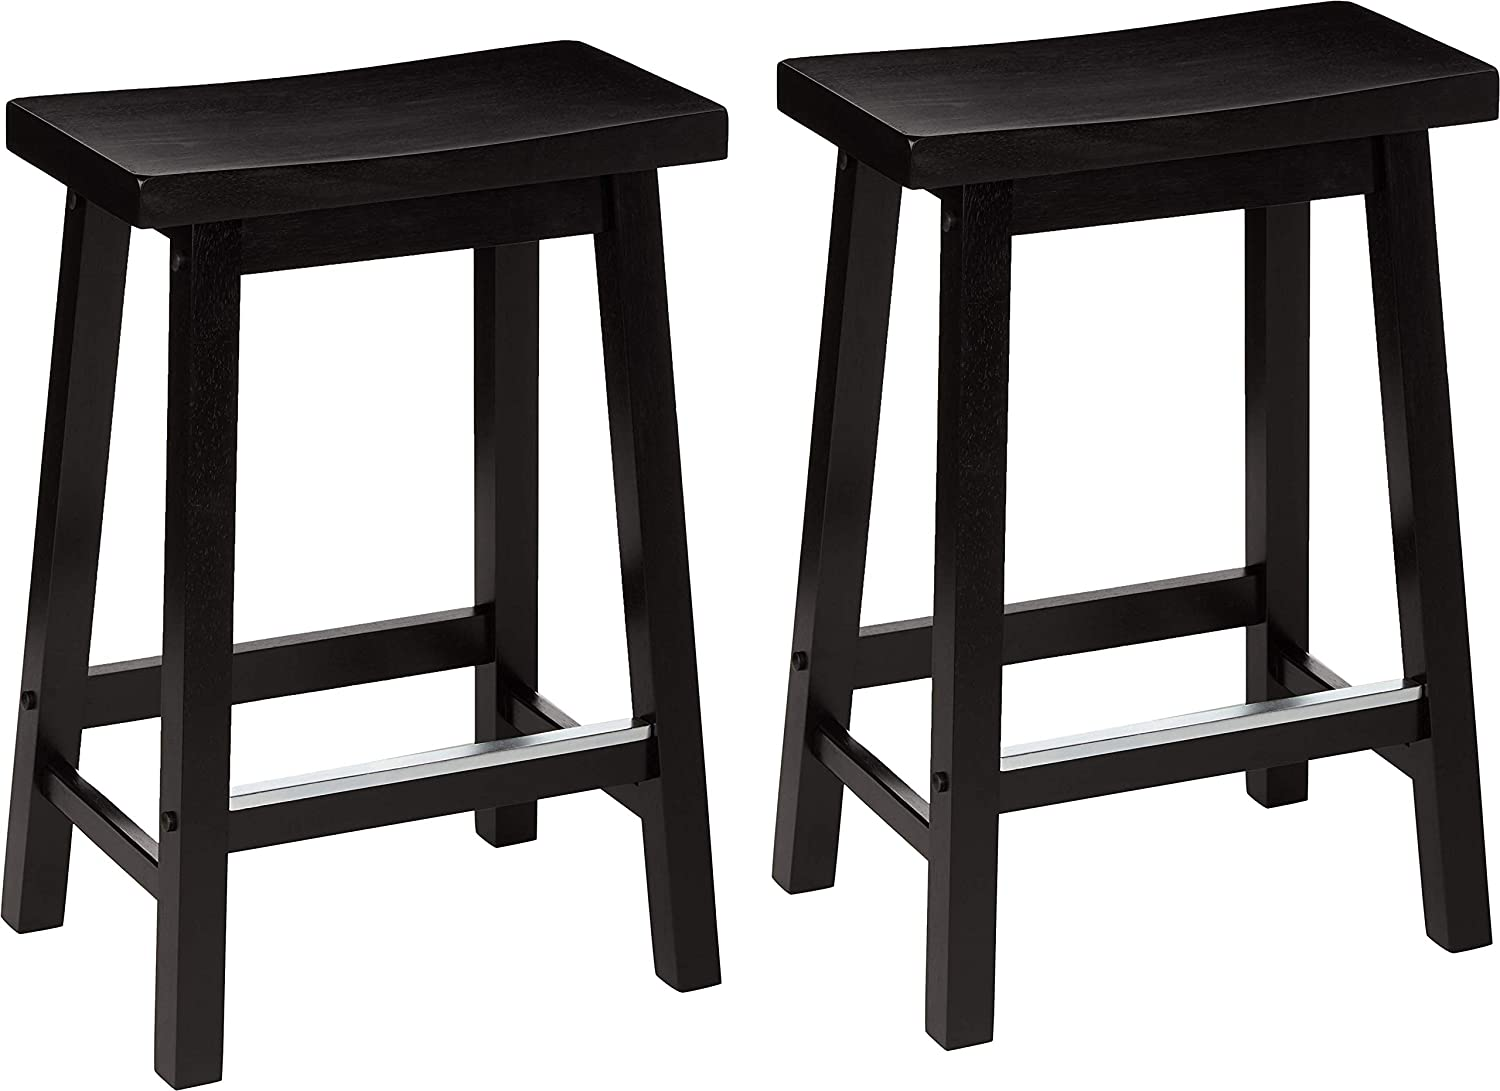 AmazonBasics Classic Solid Wood Saddle-Seat Kitchen Counter Stool with Foot Plate 24 Inch, Black, Set of 2